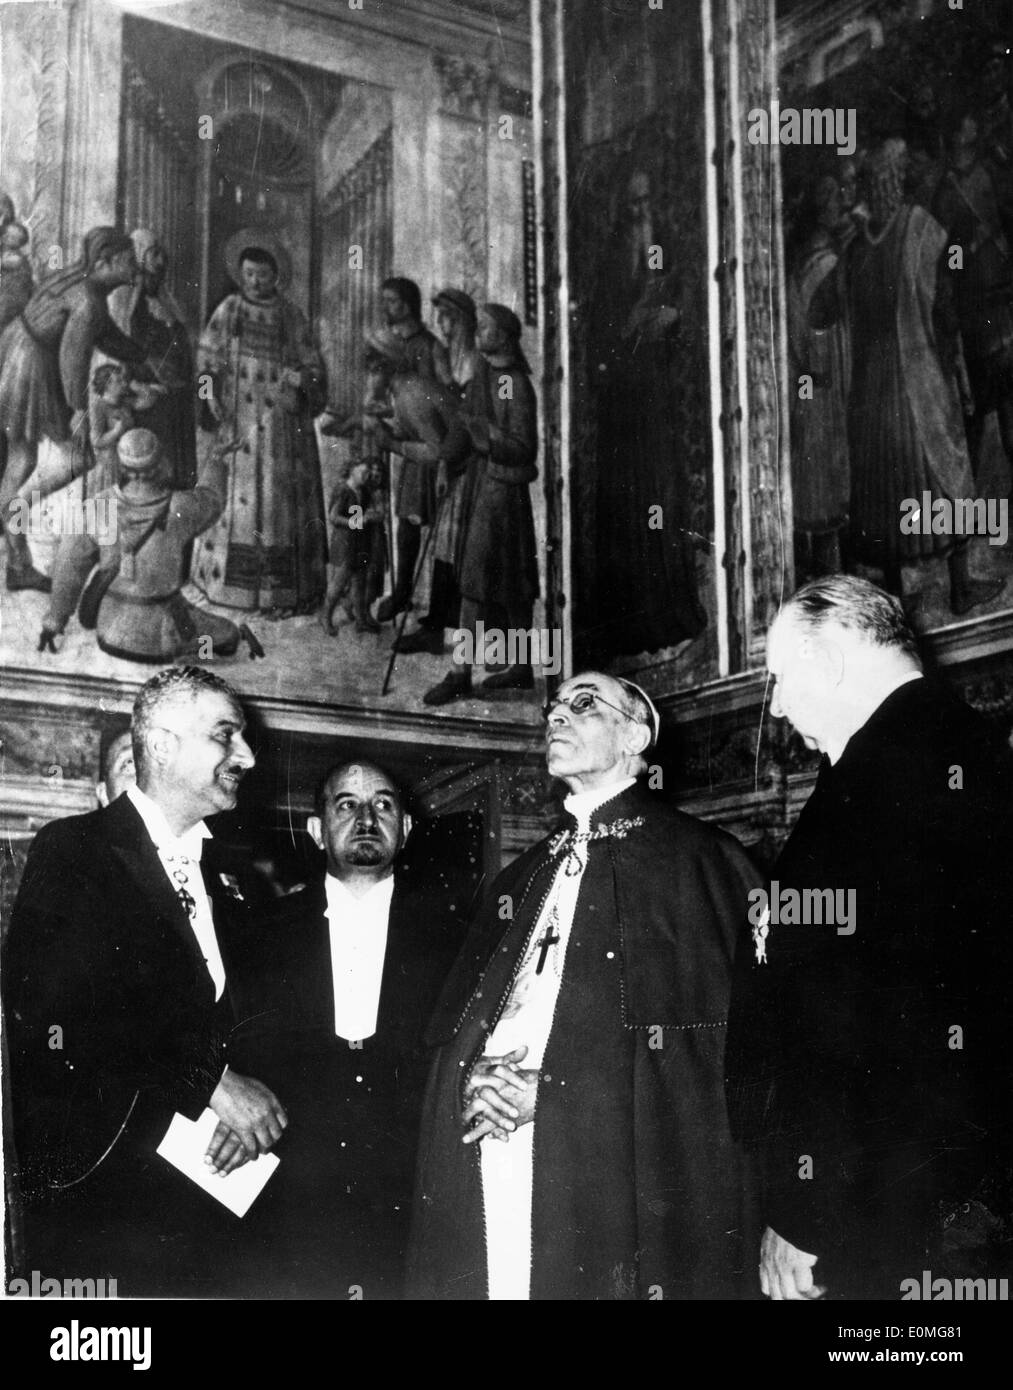 Pope Pius XII viewing 13th Century art work at the Vatican - Stock Image